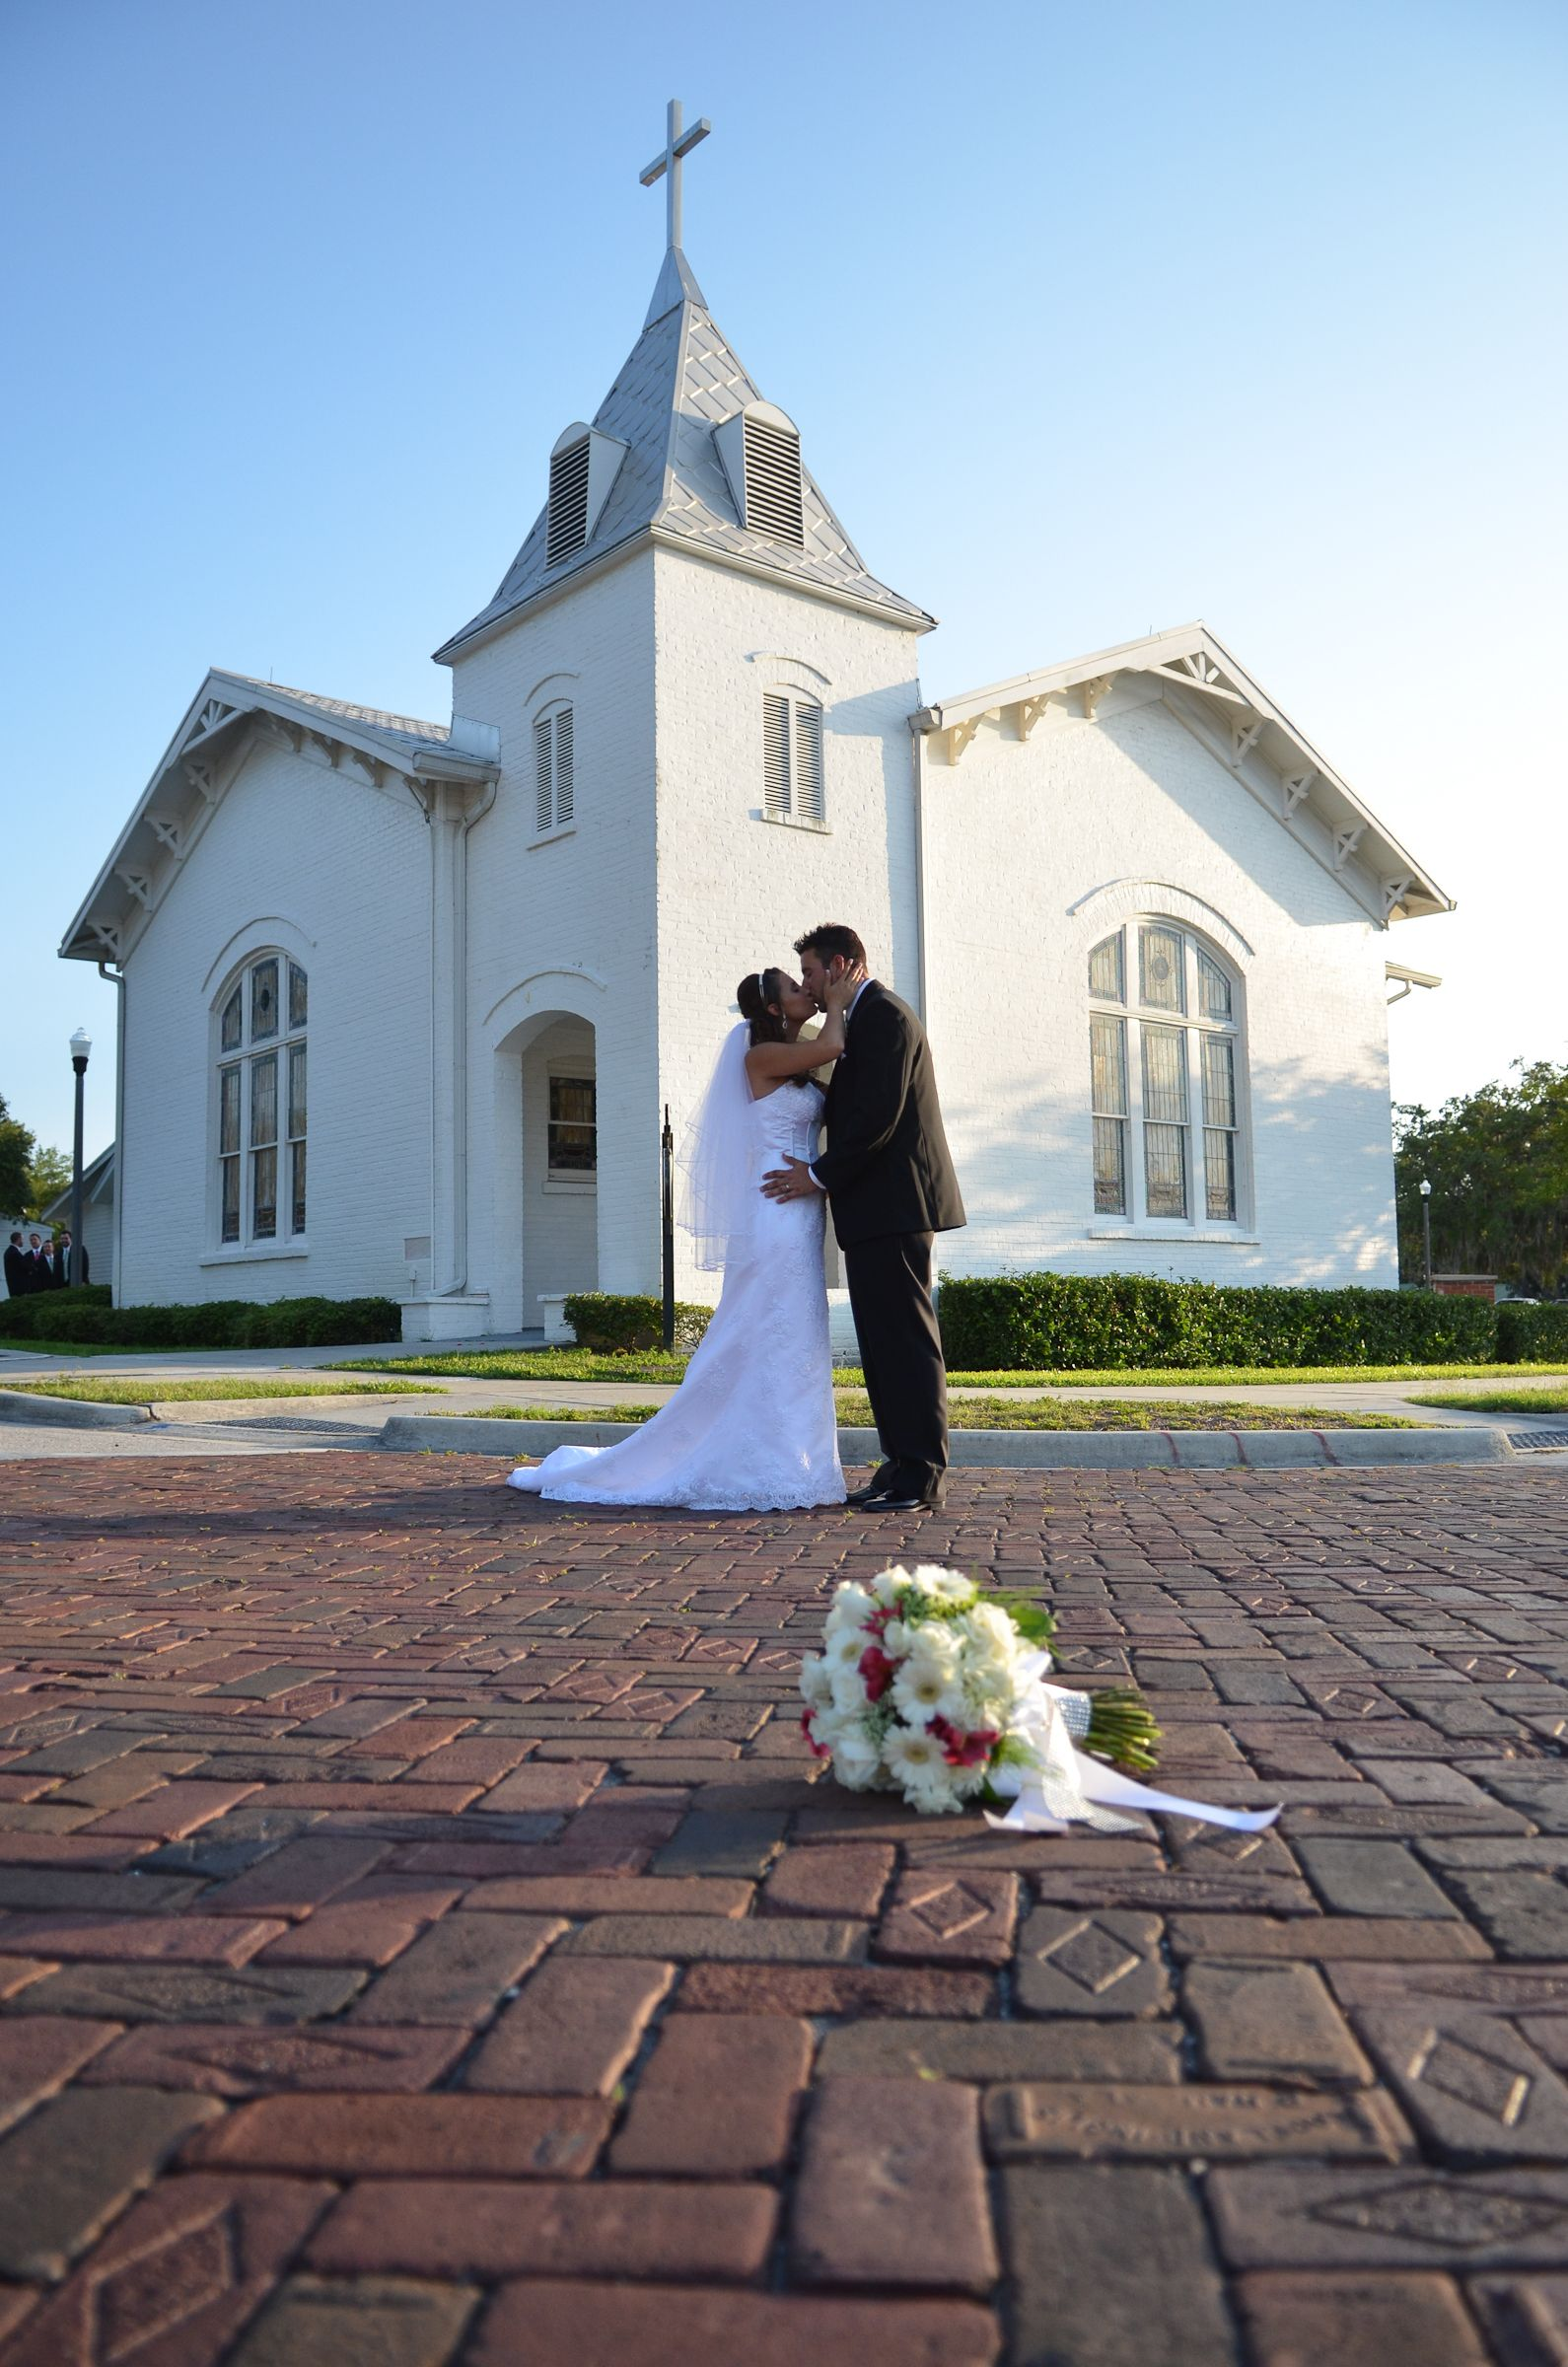 Reba Sutton White Chapel In Palm Harbor Florida Offers Great Scenery For Classic Photos